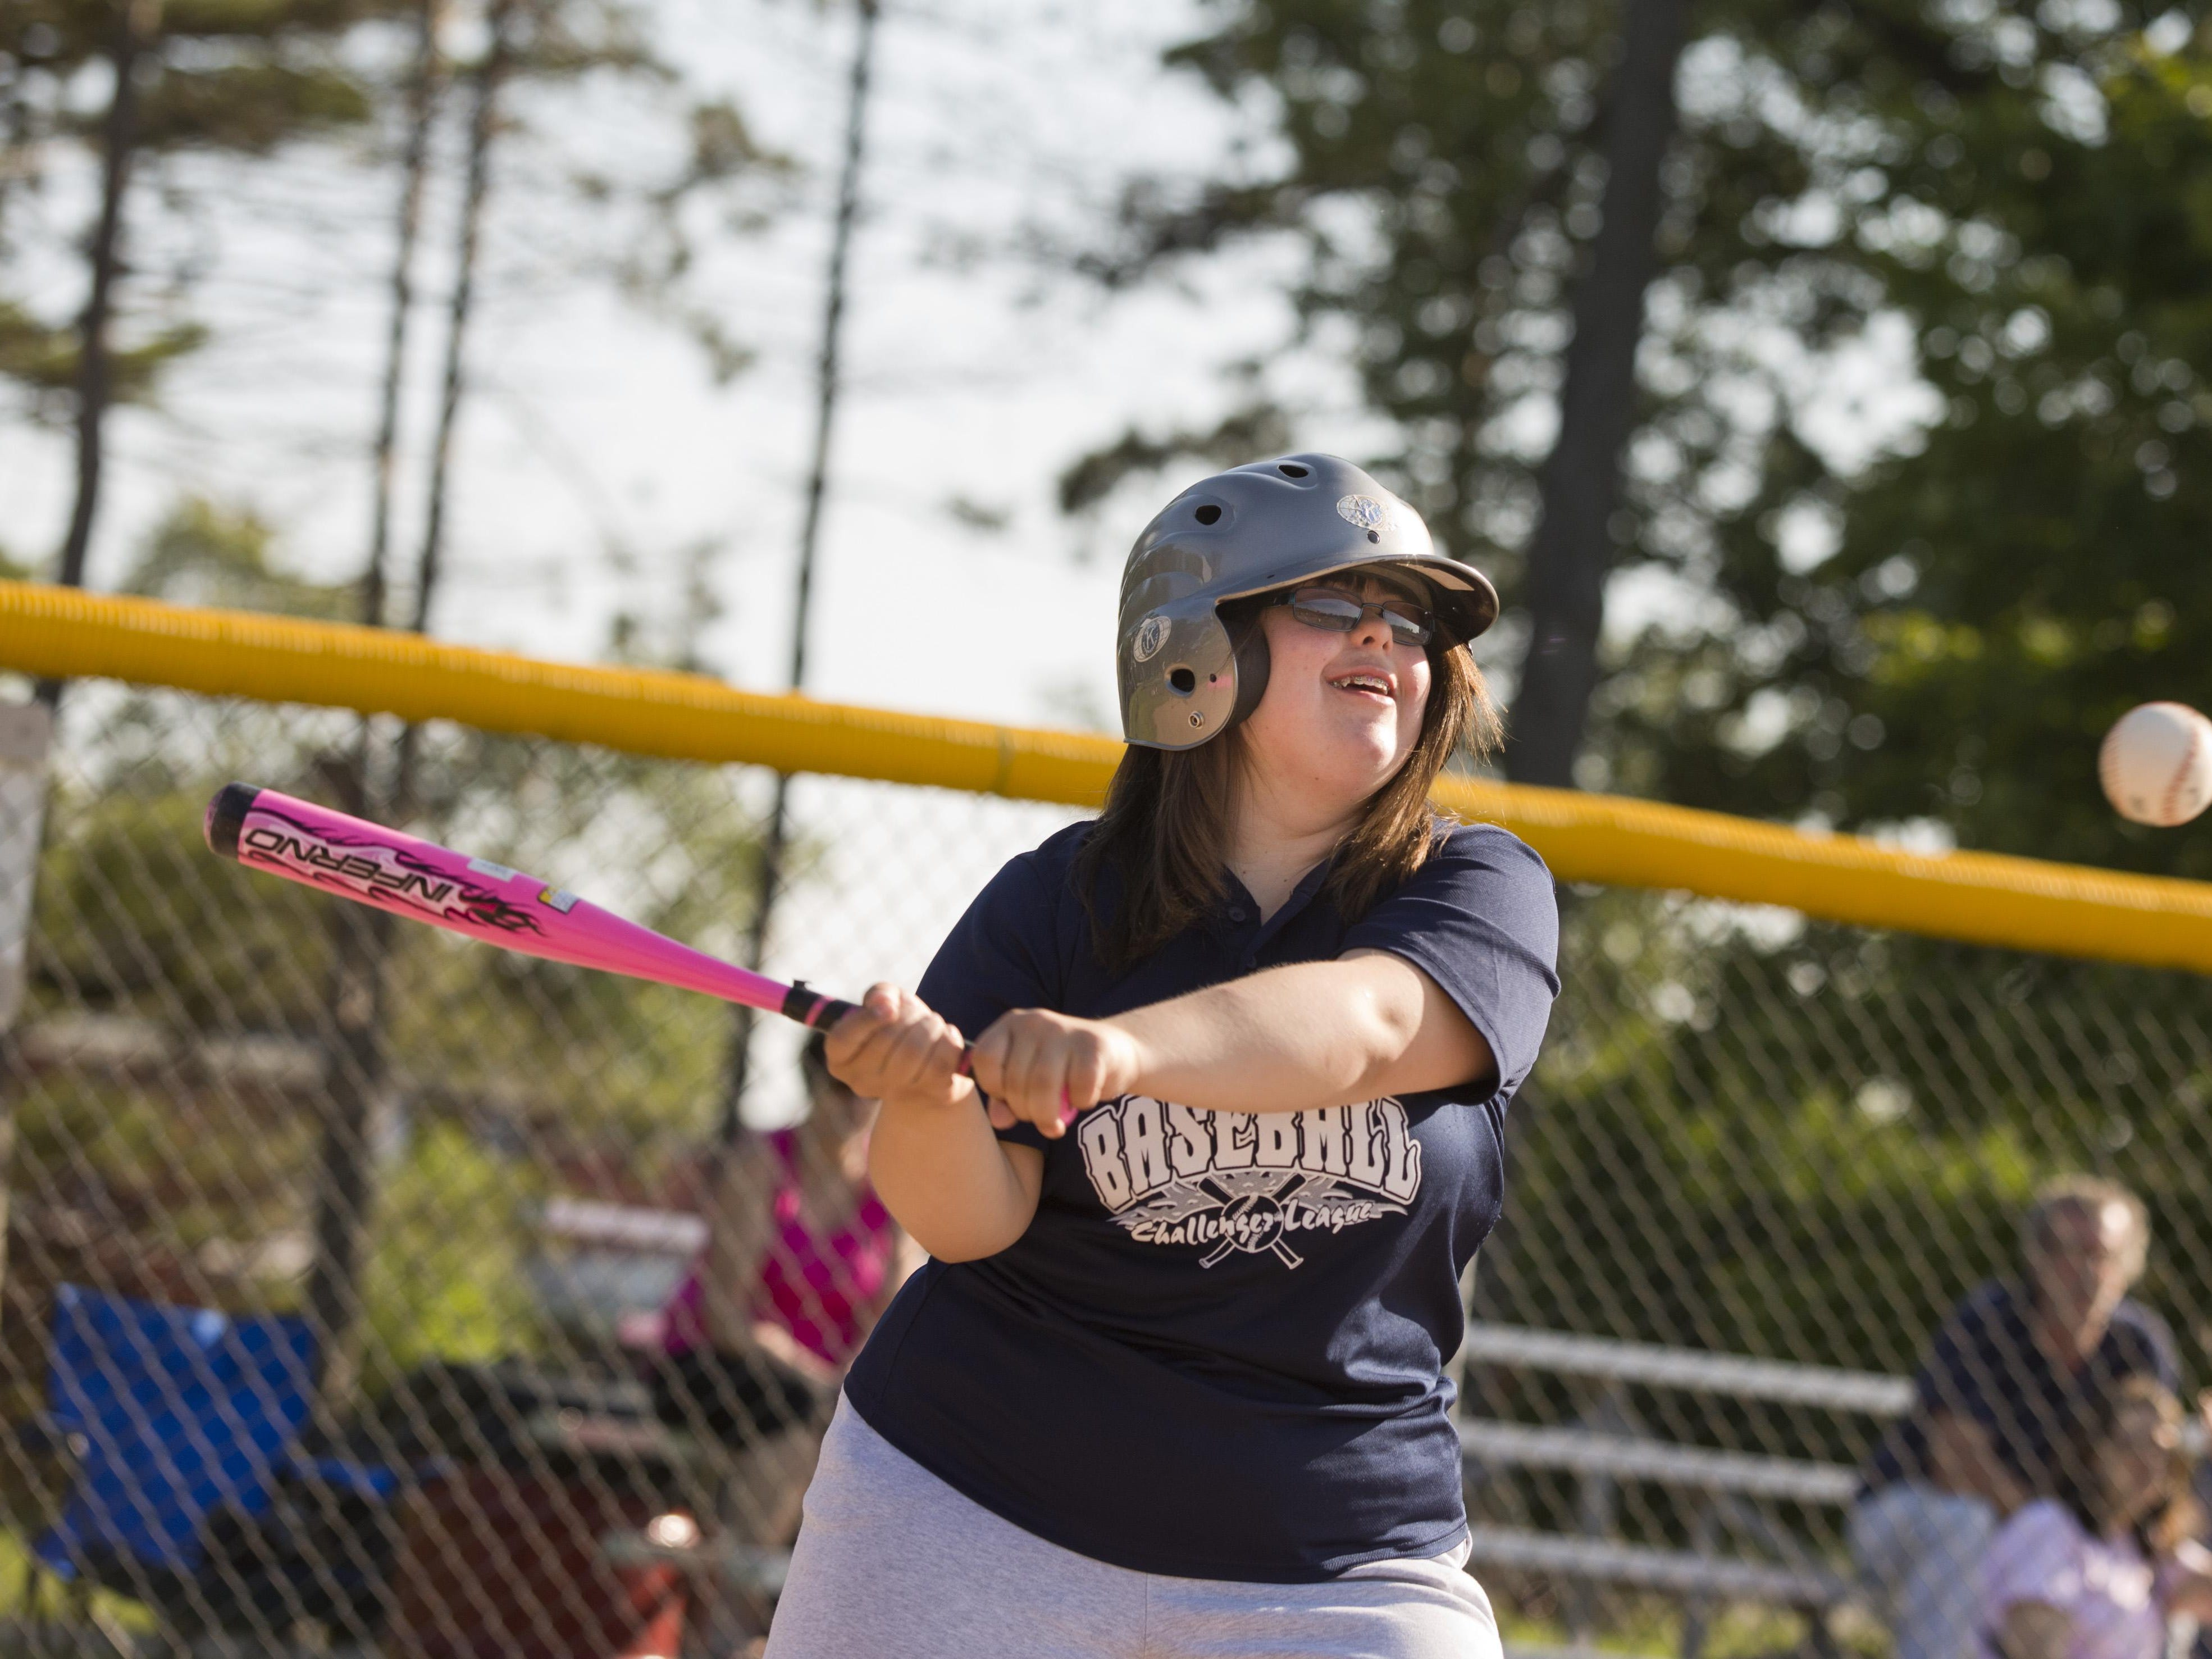 Victoria Guay gets a hit during a Marysville Little League Challenger Division baseball game Thursday, July 2, 2015 at Marysville Municipal Park.